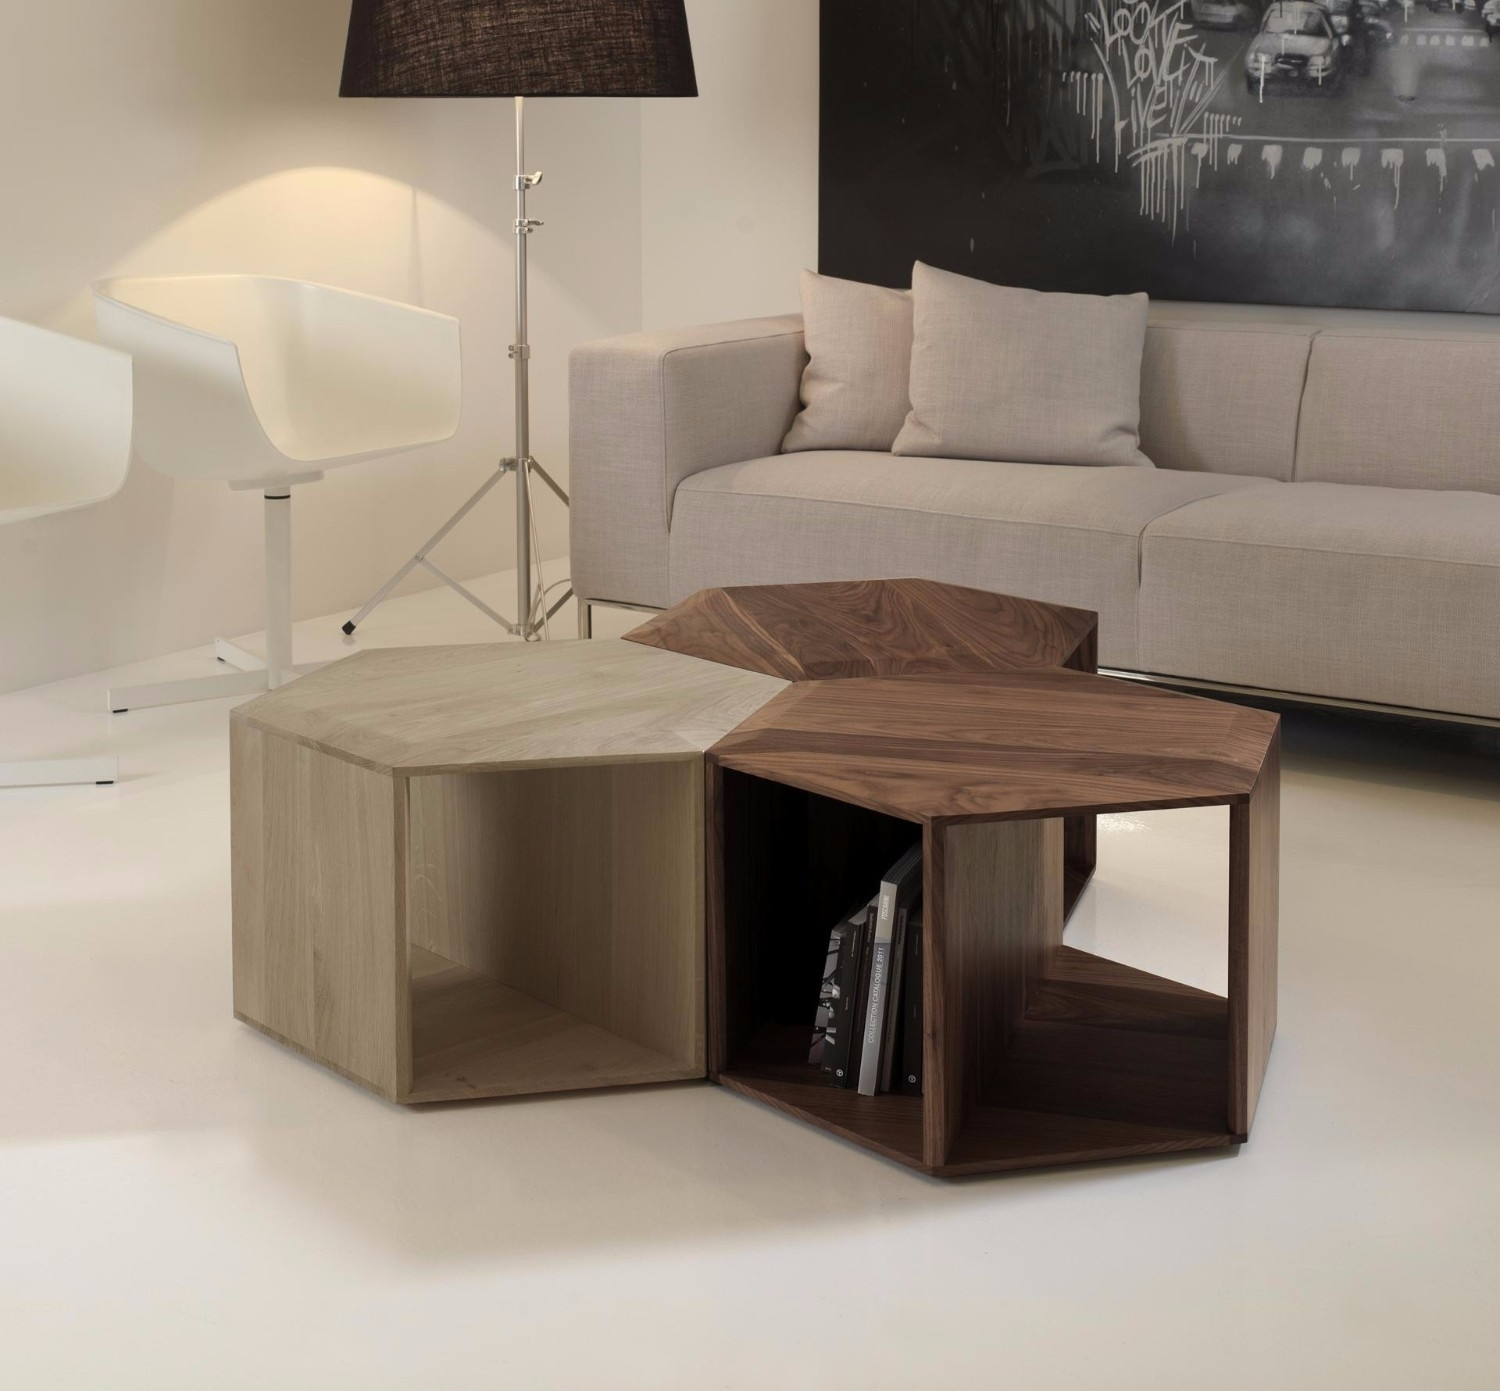 Get Inspiredexquisite Minimalist Coffee Tables inside Minimalist Coffee Tables (Image 9 of 30)